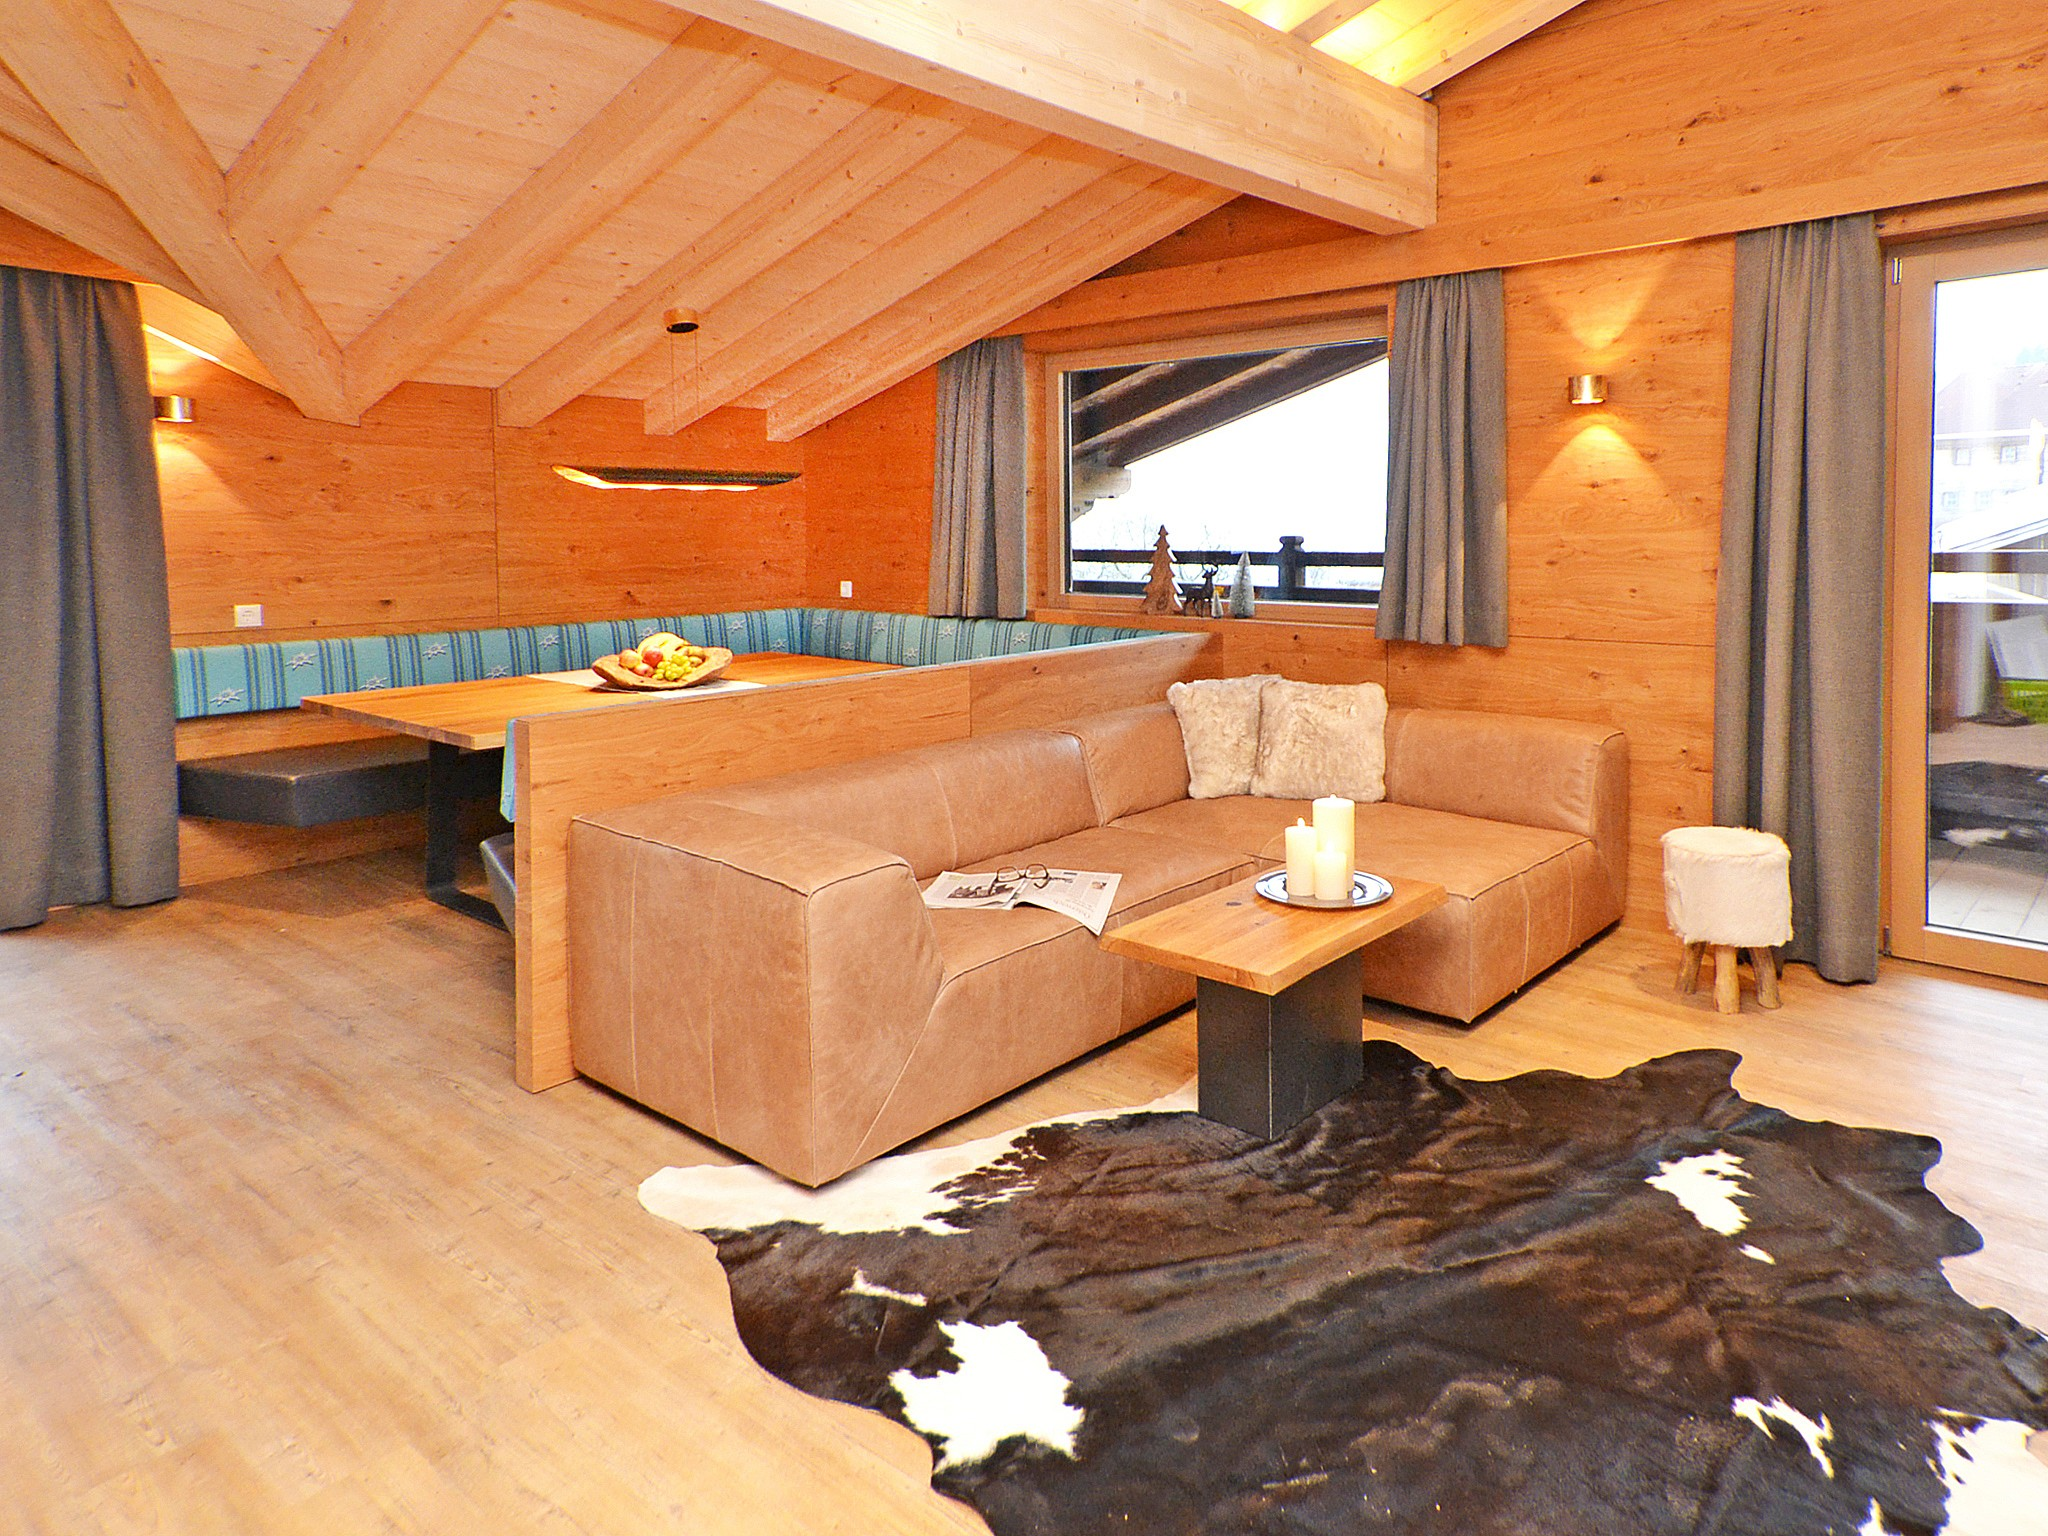 Spa Lodge Zillertal 2 - living room